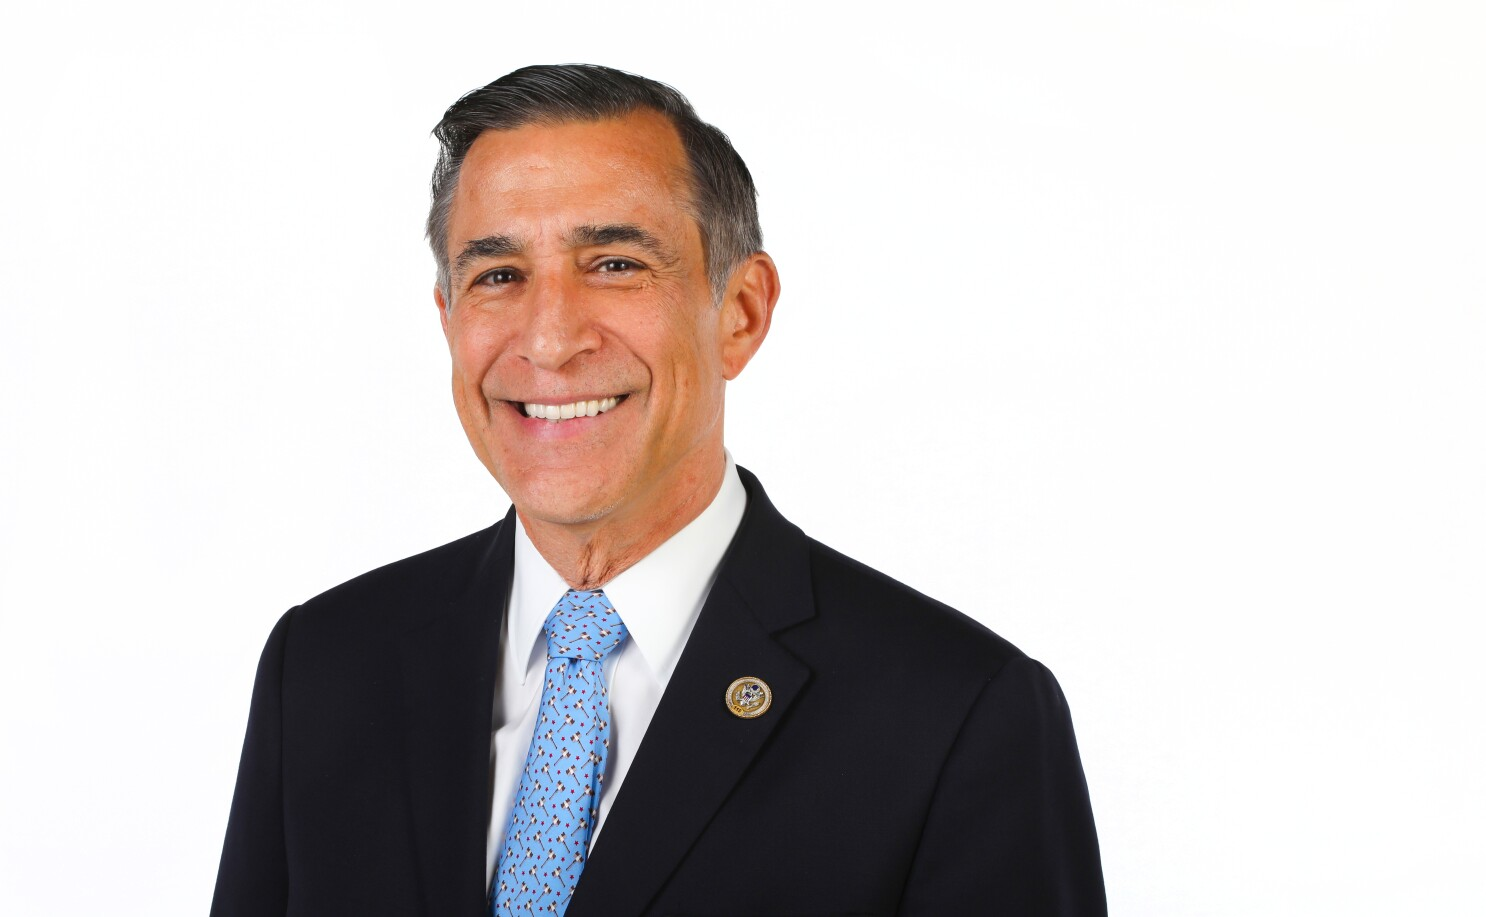 Meet Darrell Issa, candidate for the 50th Congressional District